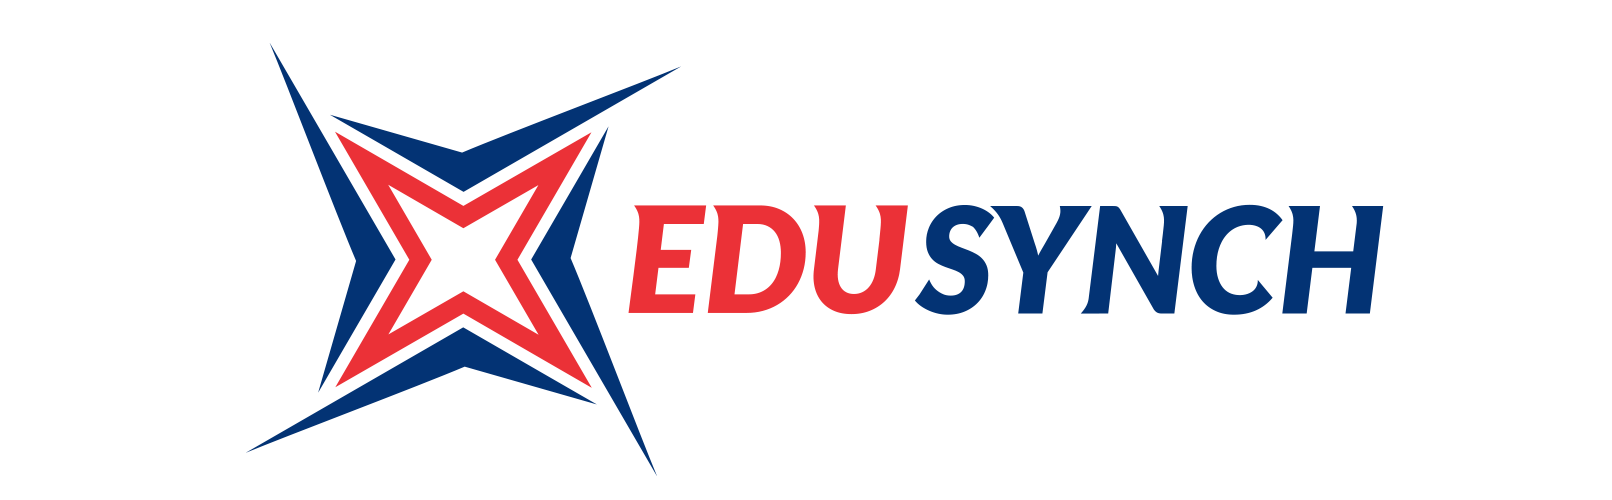 More about EduSynch